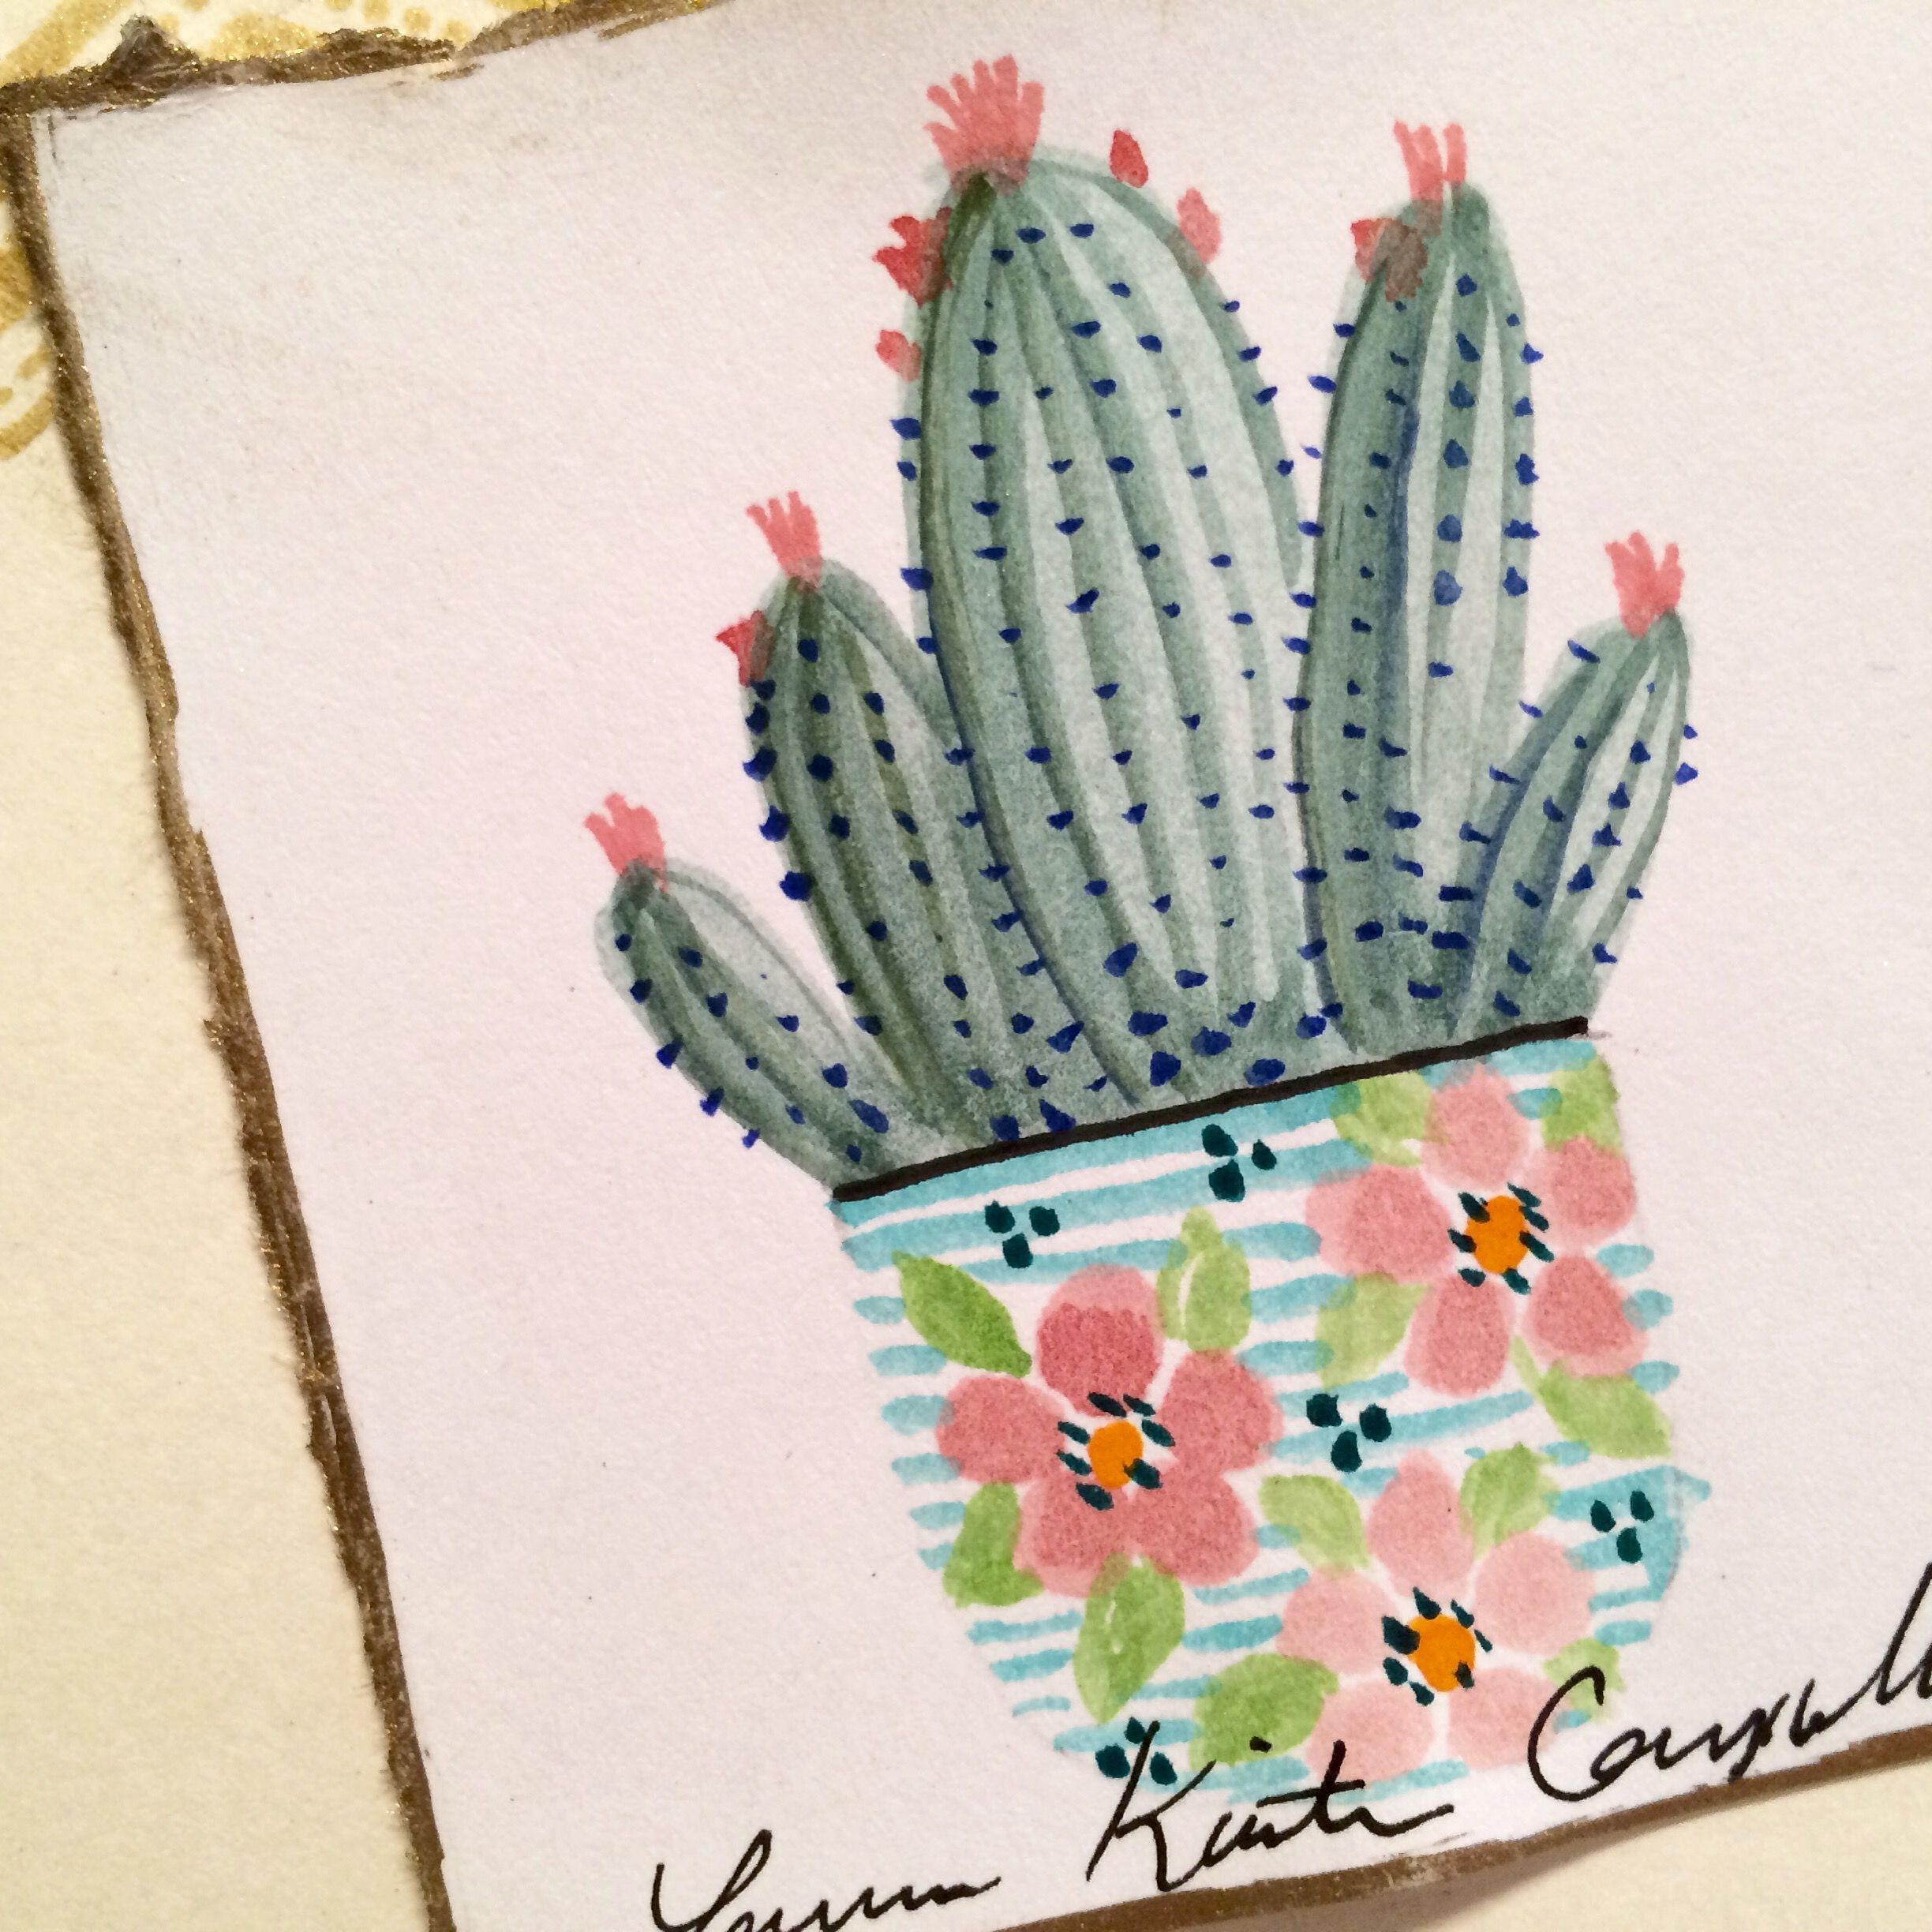 Mini watercolor cactus by Laura Kirste Campbell